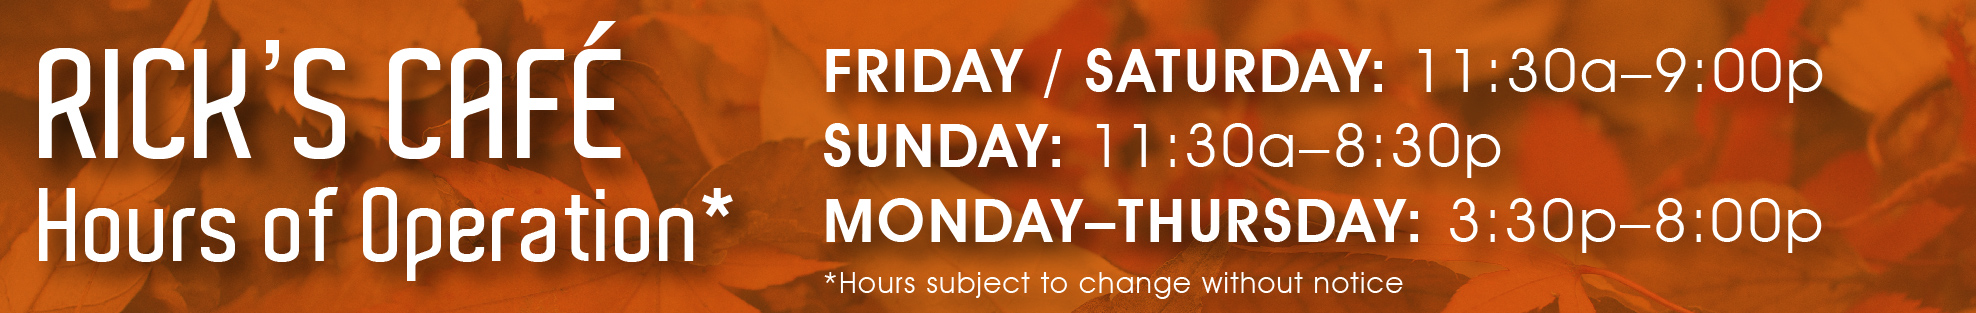 Rick's Cafe hours